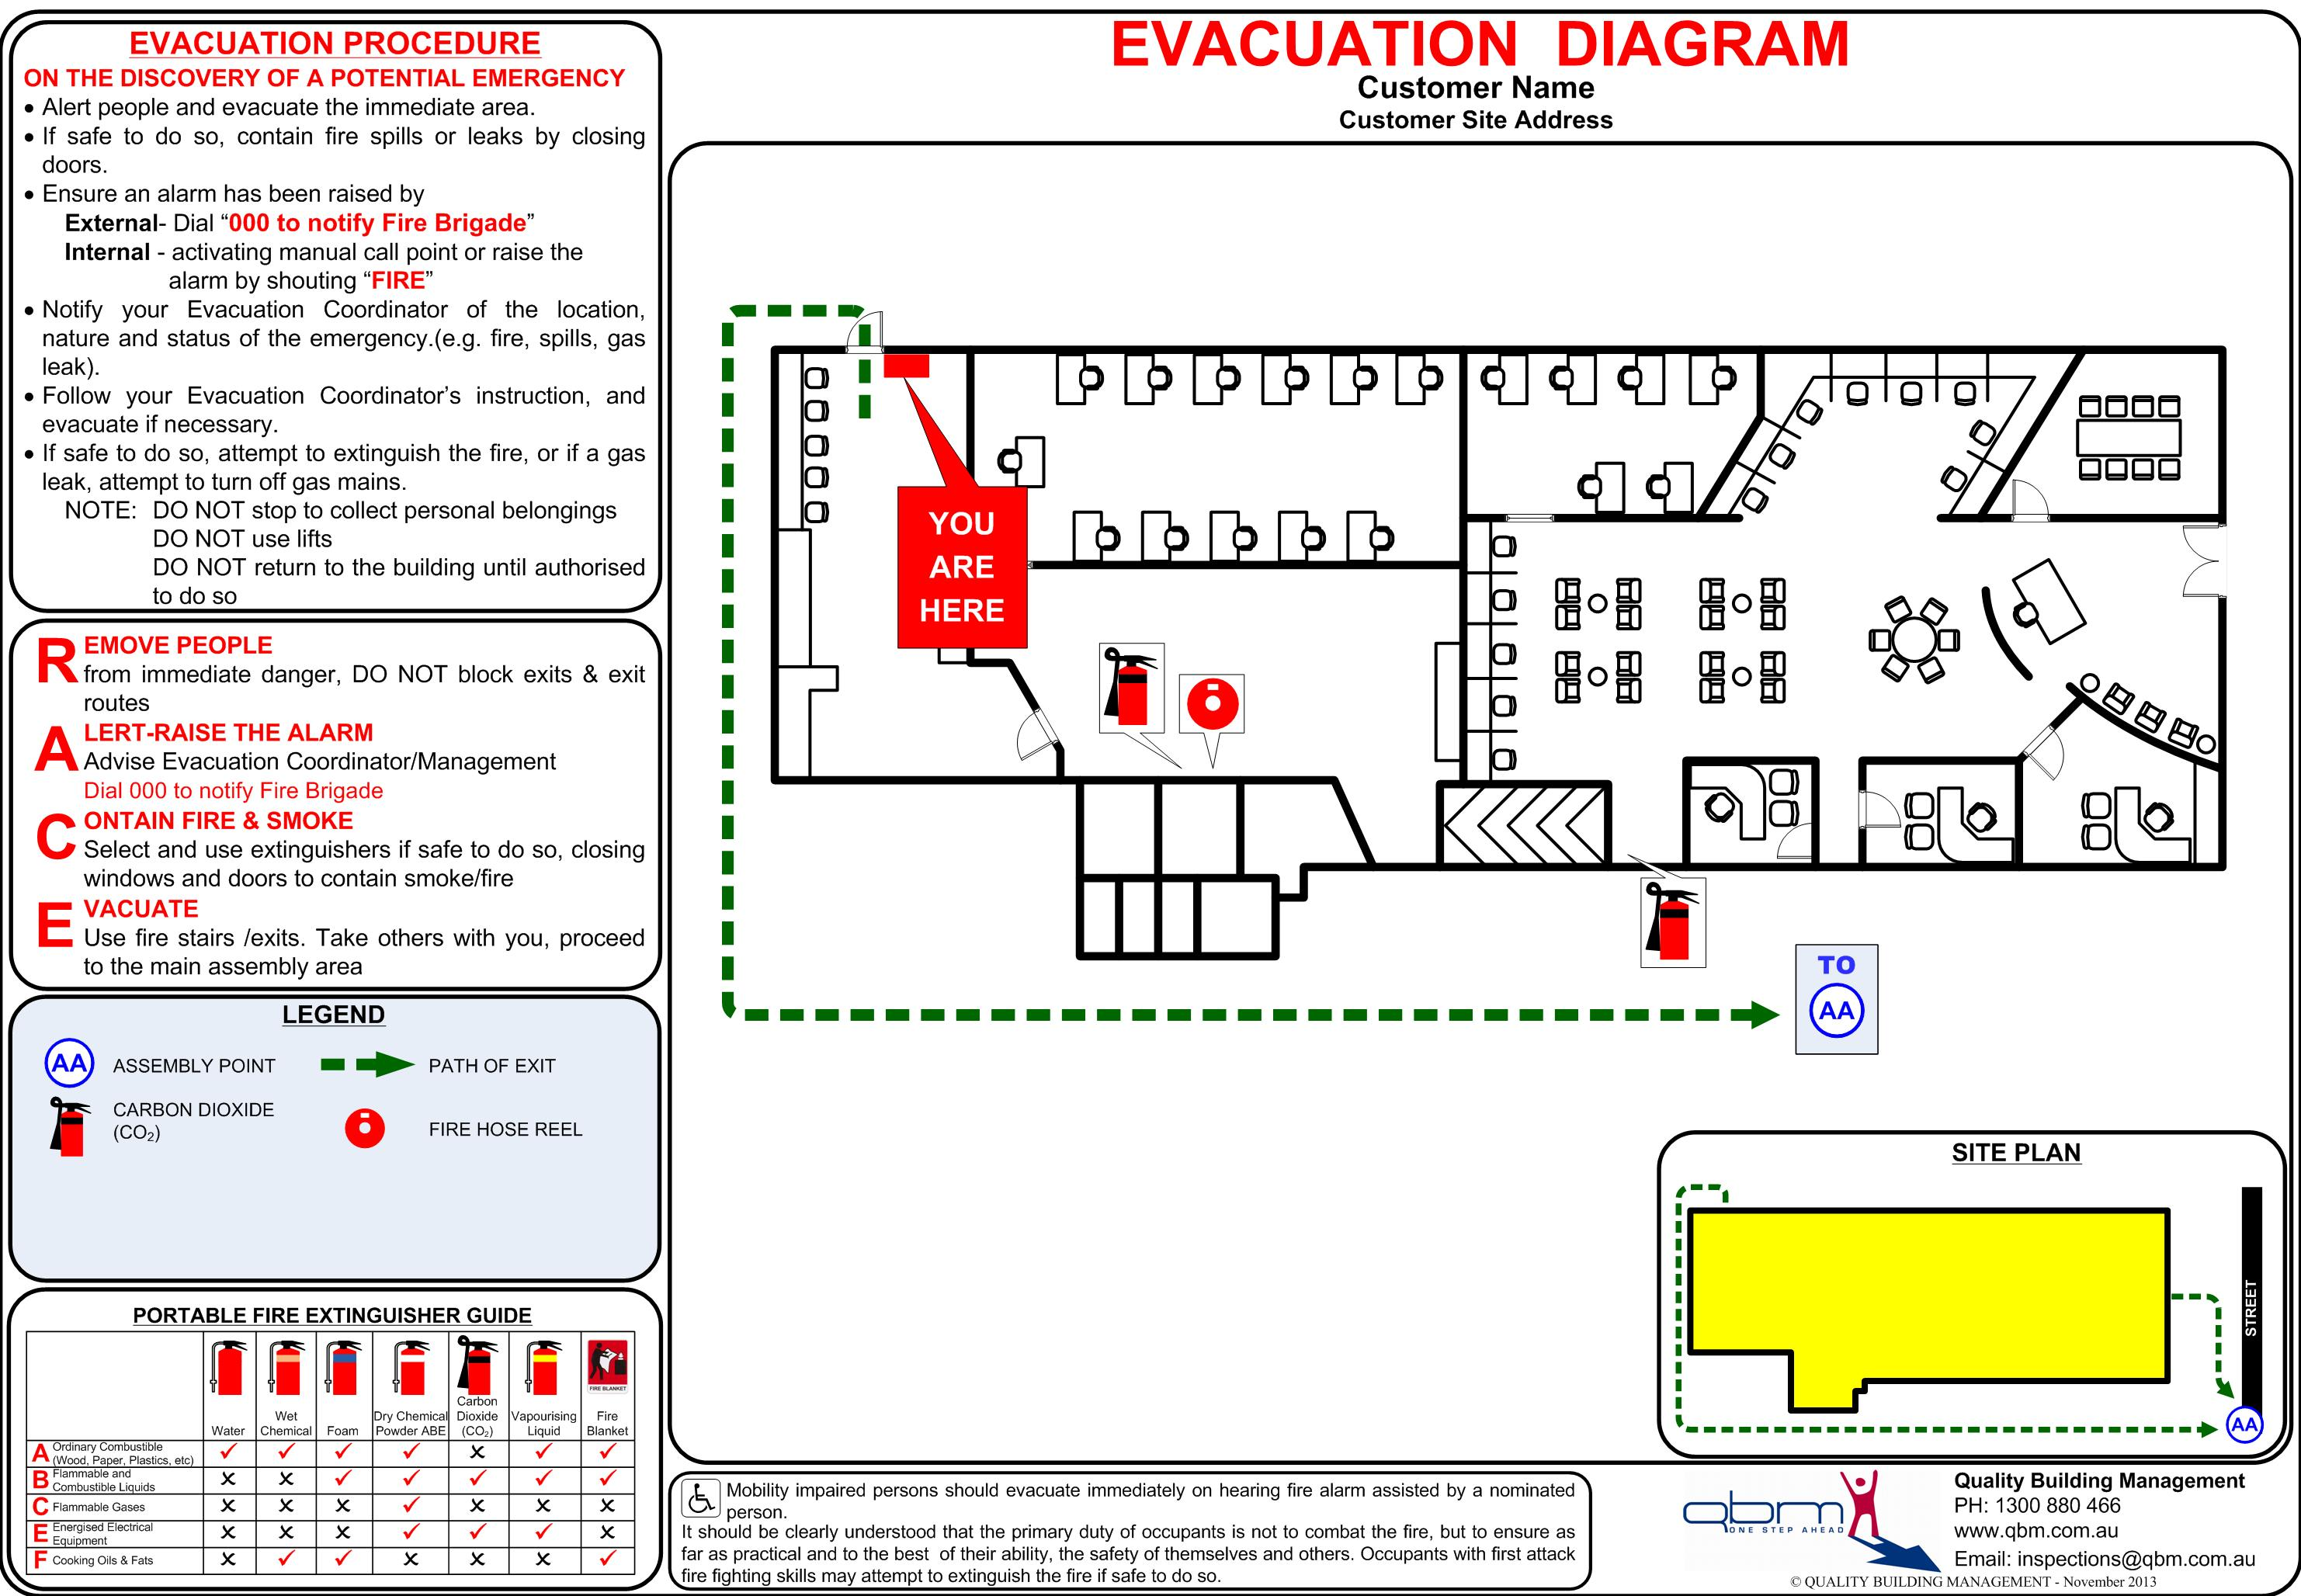 Emergency evacuation diagrams qbm compliance reporting for Evacuation label template